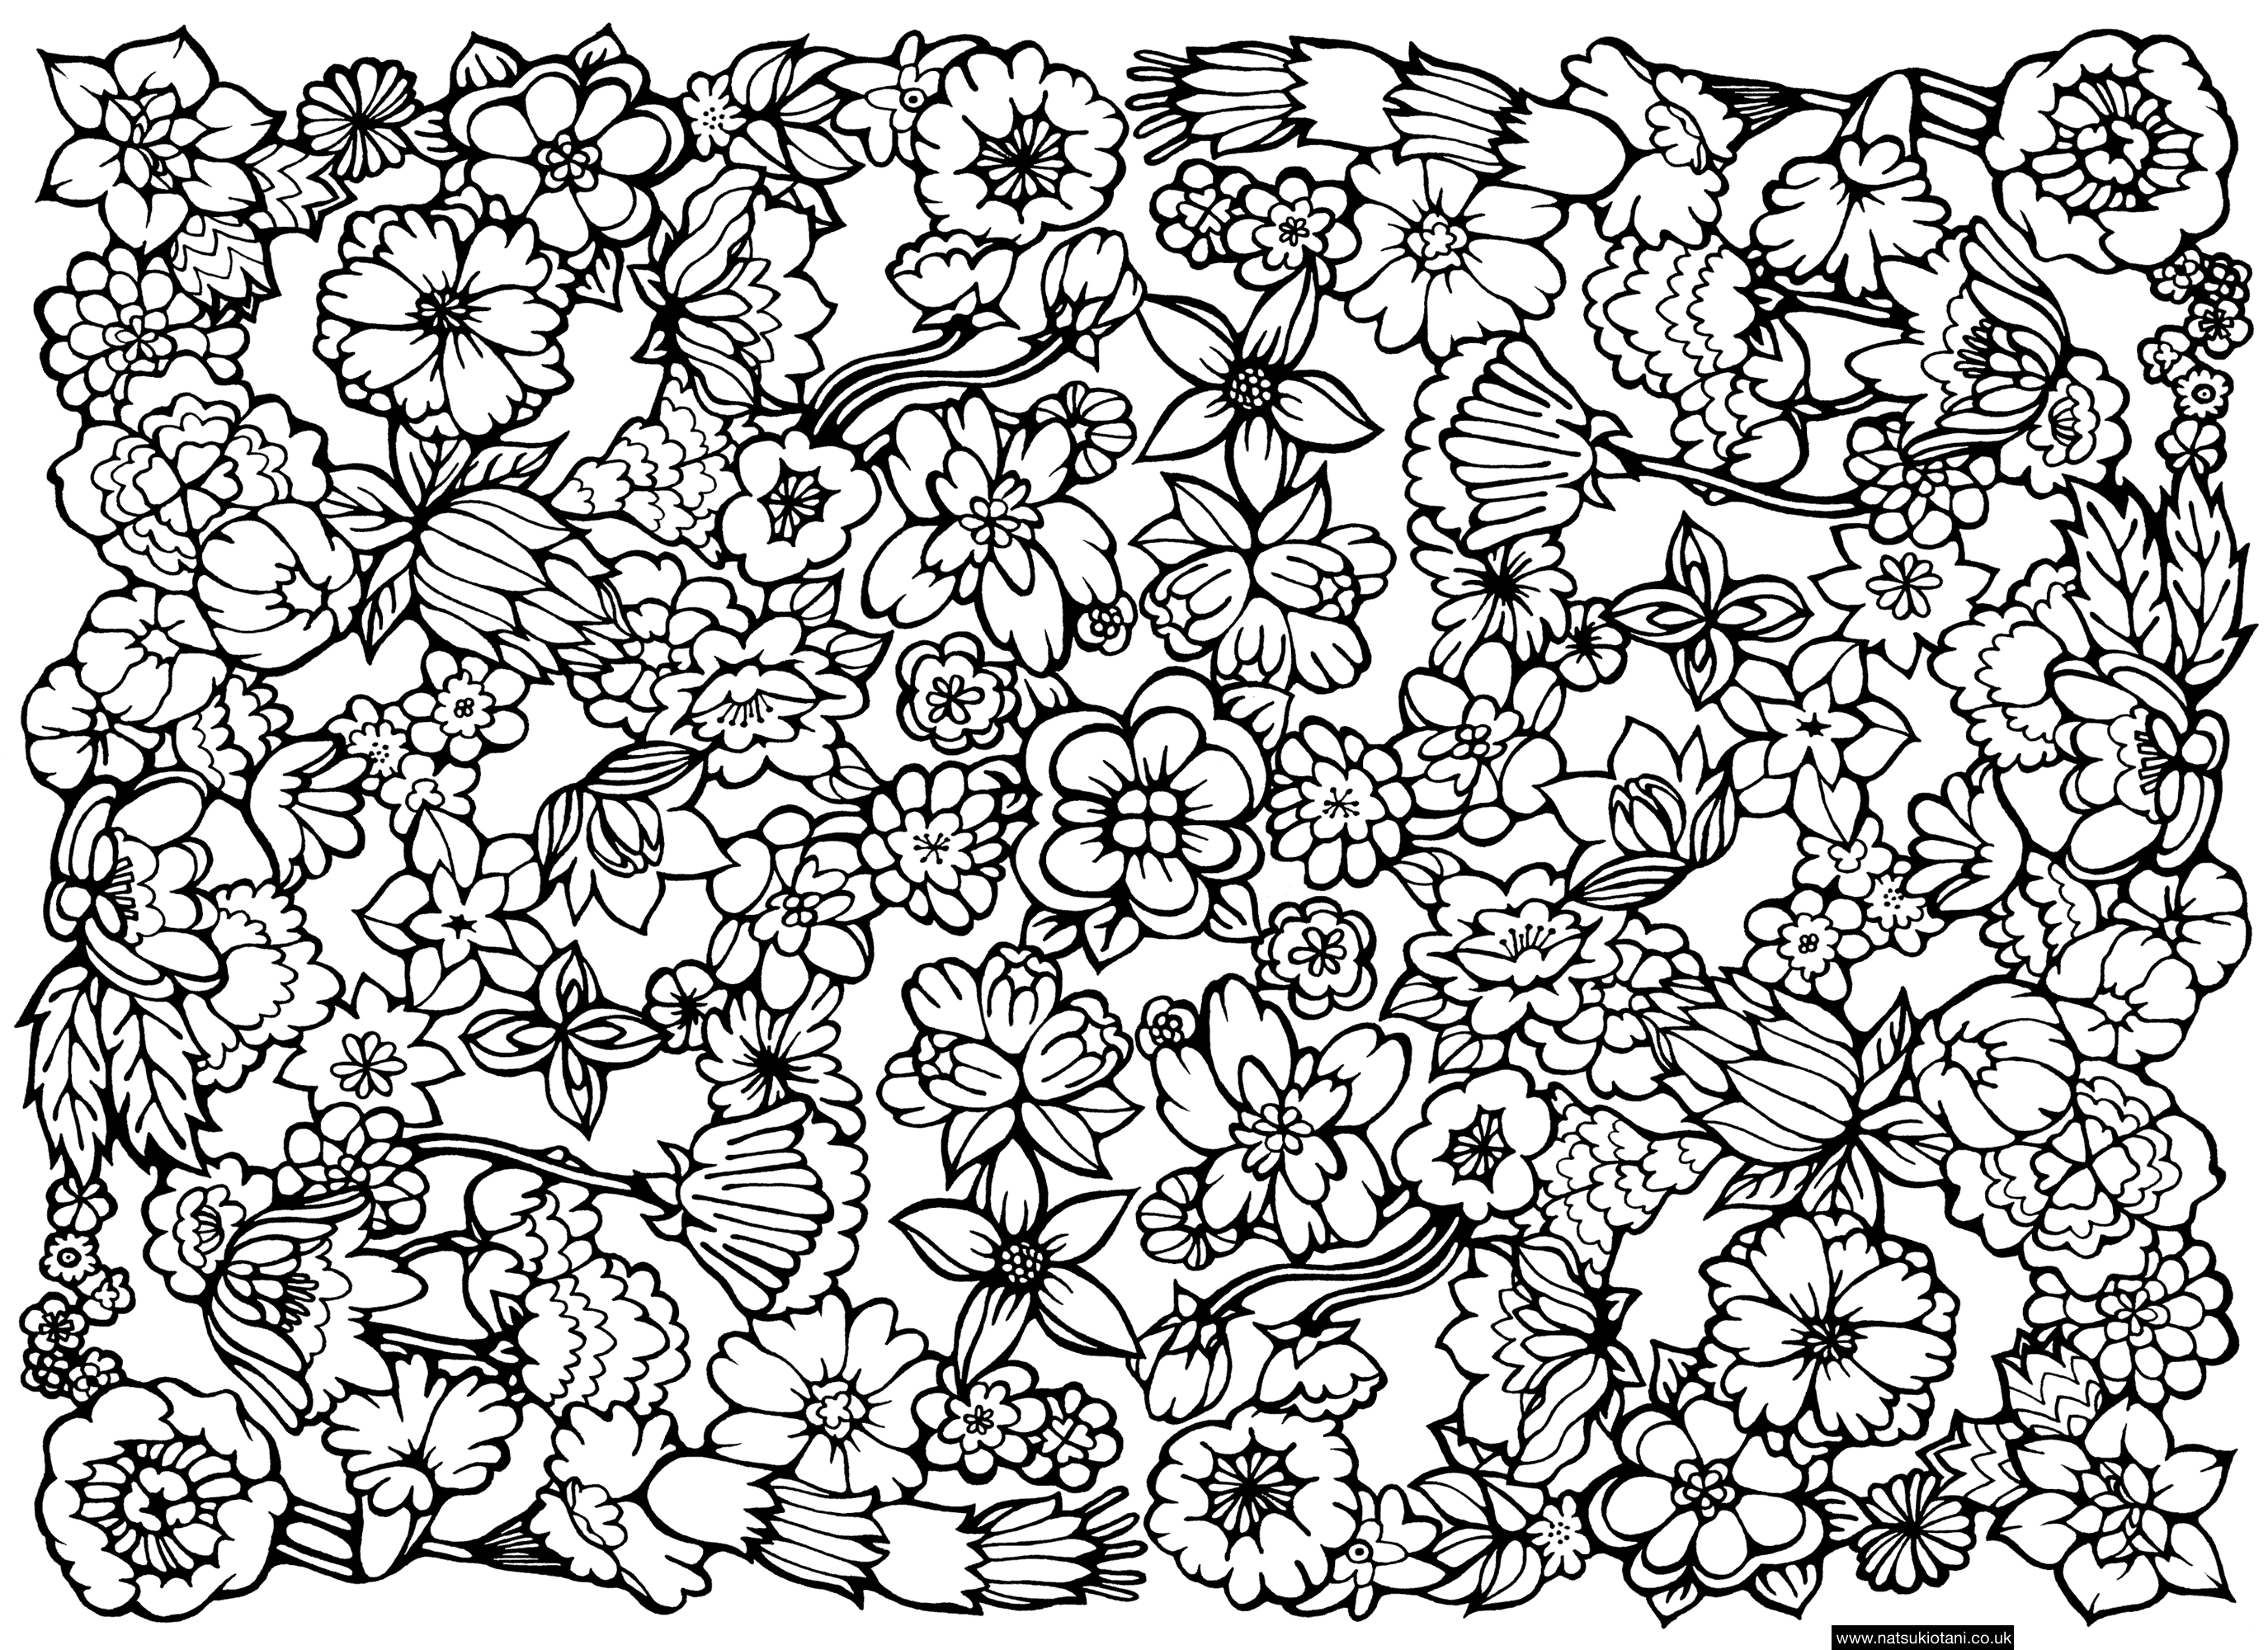 free printable design coloring pages coloring pages hard designs coloring home pages design printable free coloring